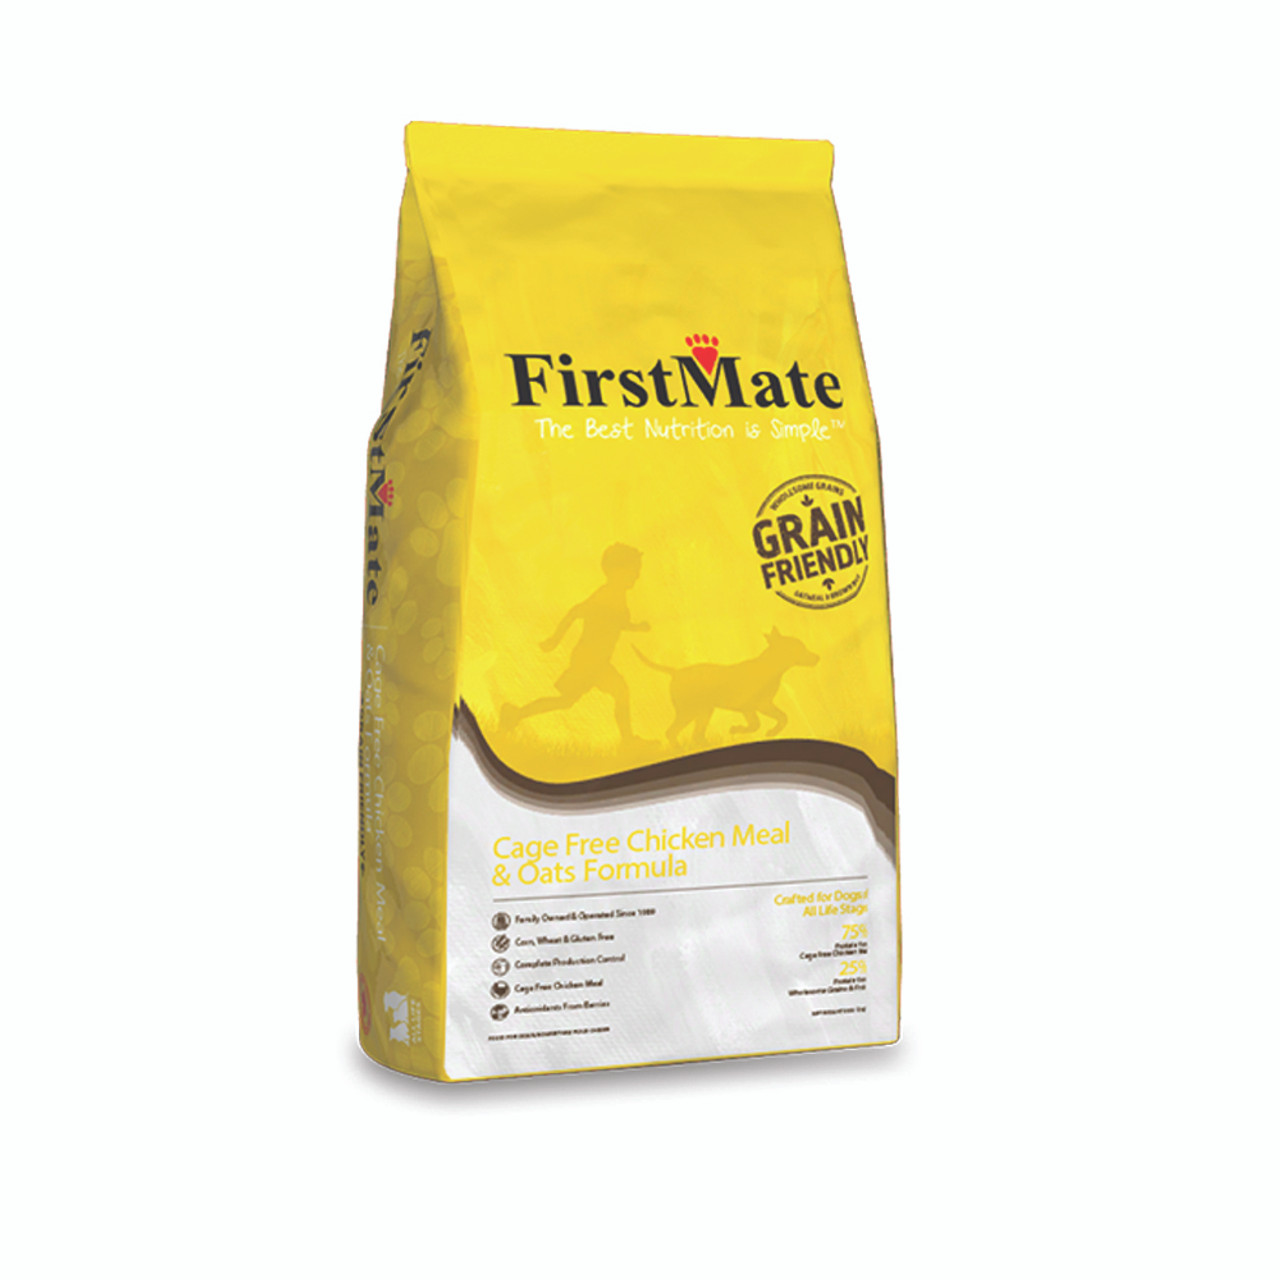 FirstMate Cage Free Chicken Meal & Oats Formula Dry Dog Food